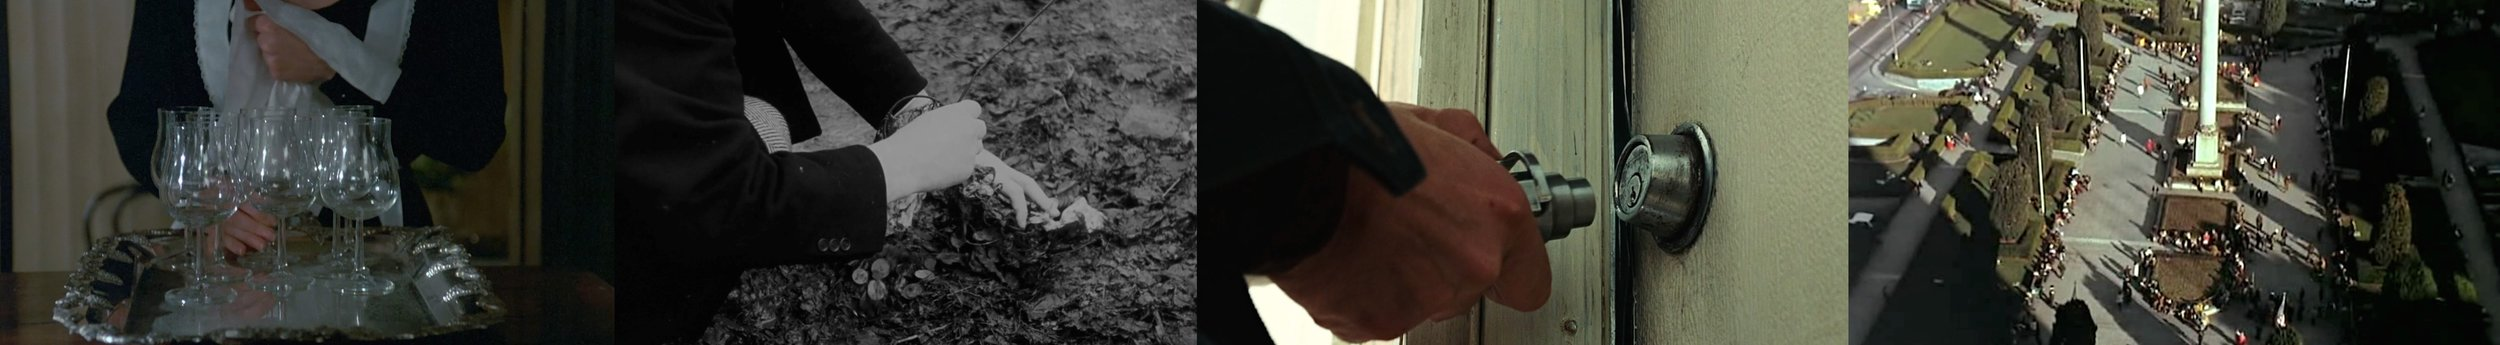 Details of objects designed to be heard: (left to right): Resonating bodies and the crips details of nature from  The Sacrifice  [1986], Anton Chigurh pops open the door in  No Contry for Old Men  [2007]. opening shot of  The Conversation  [1974] in which we find ourselves moving from a wide field of activity to a very specific point of focus.